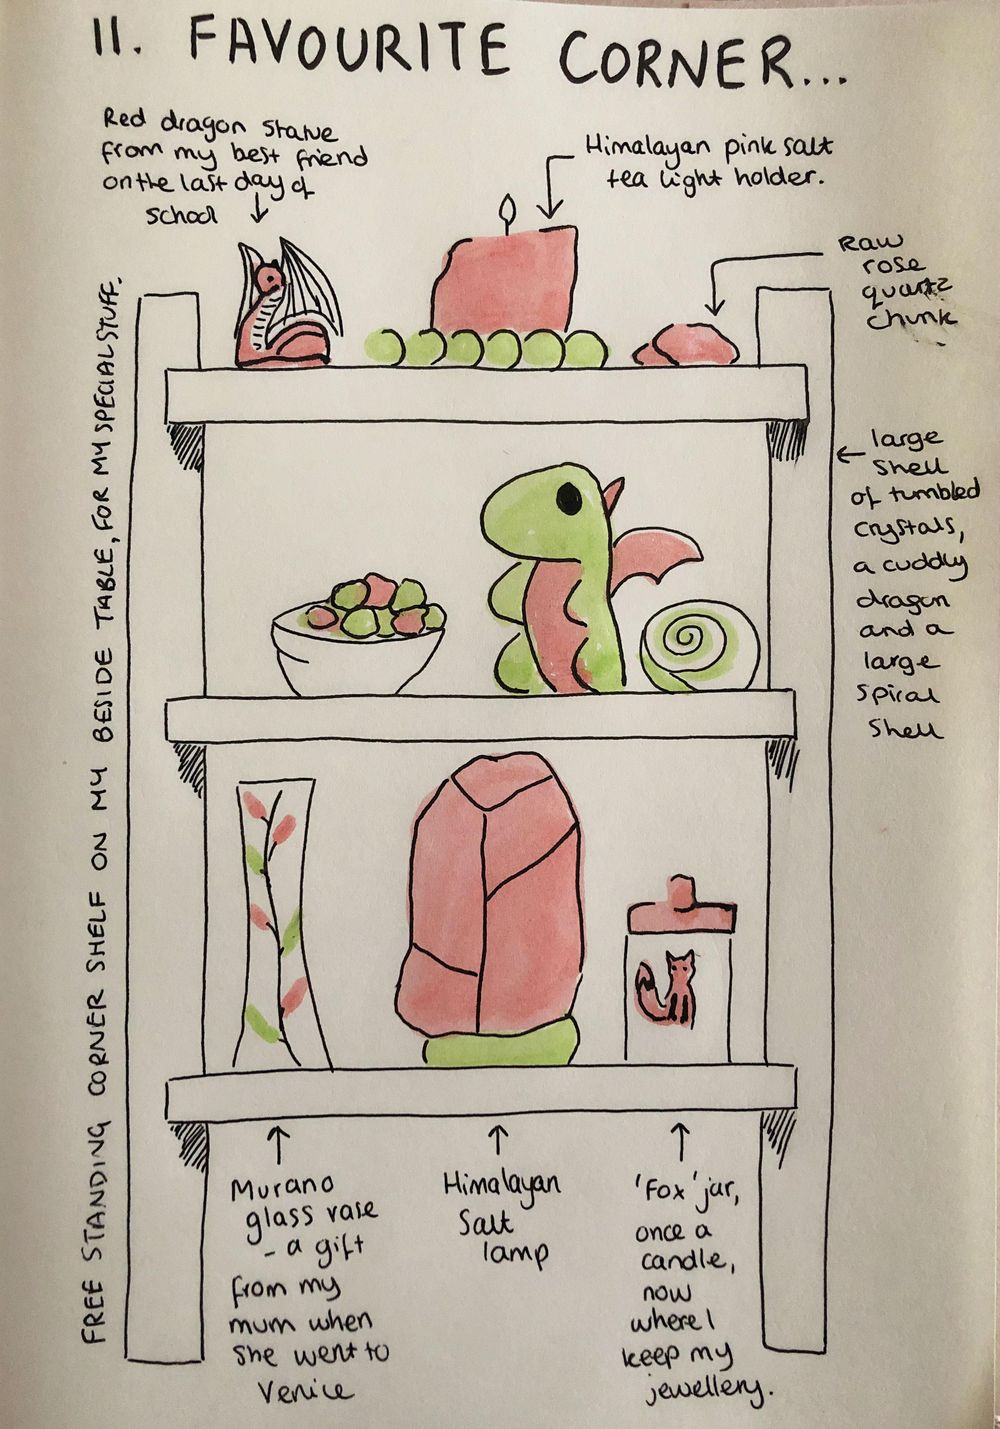 Daily Illustrated Journaling Prompts - image 4 - student project